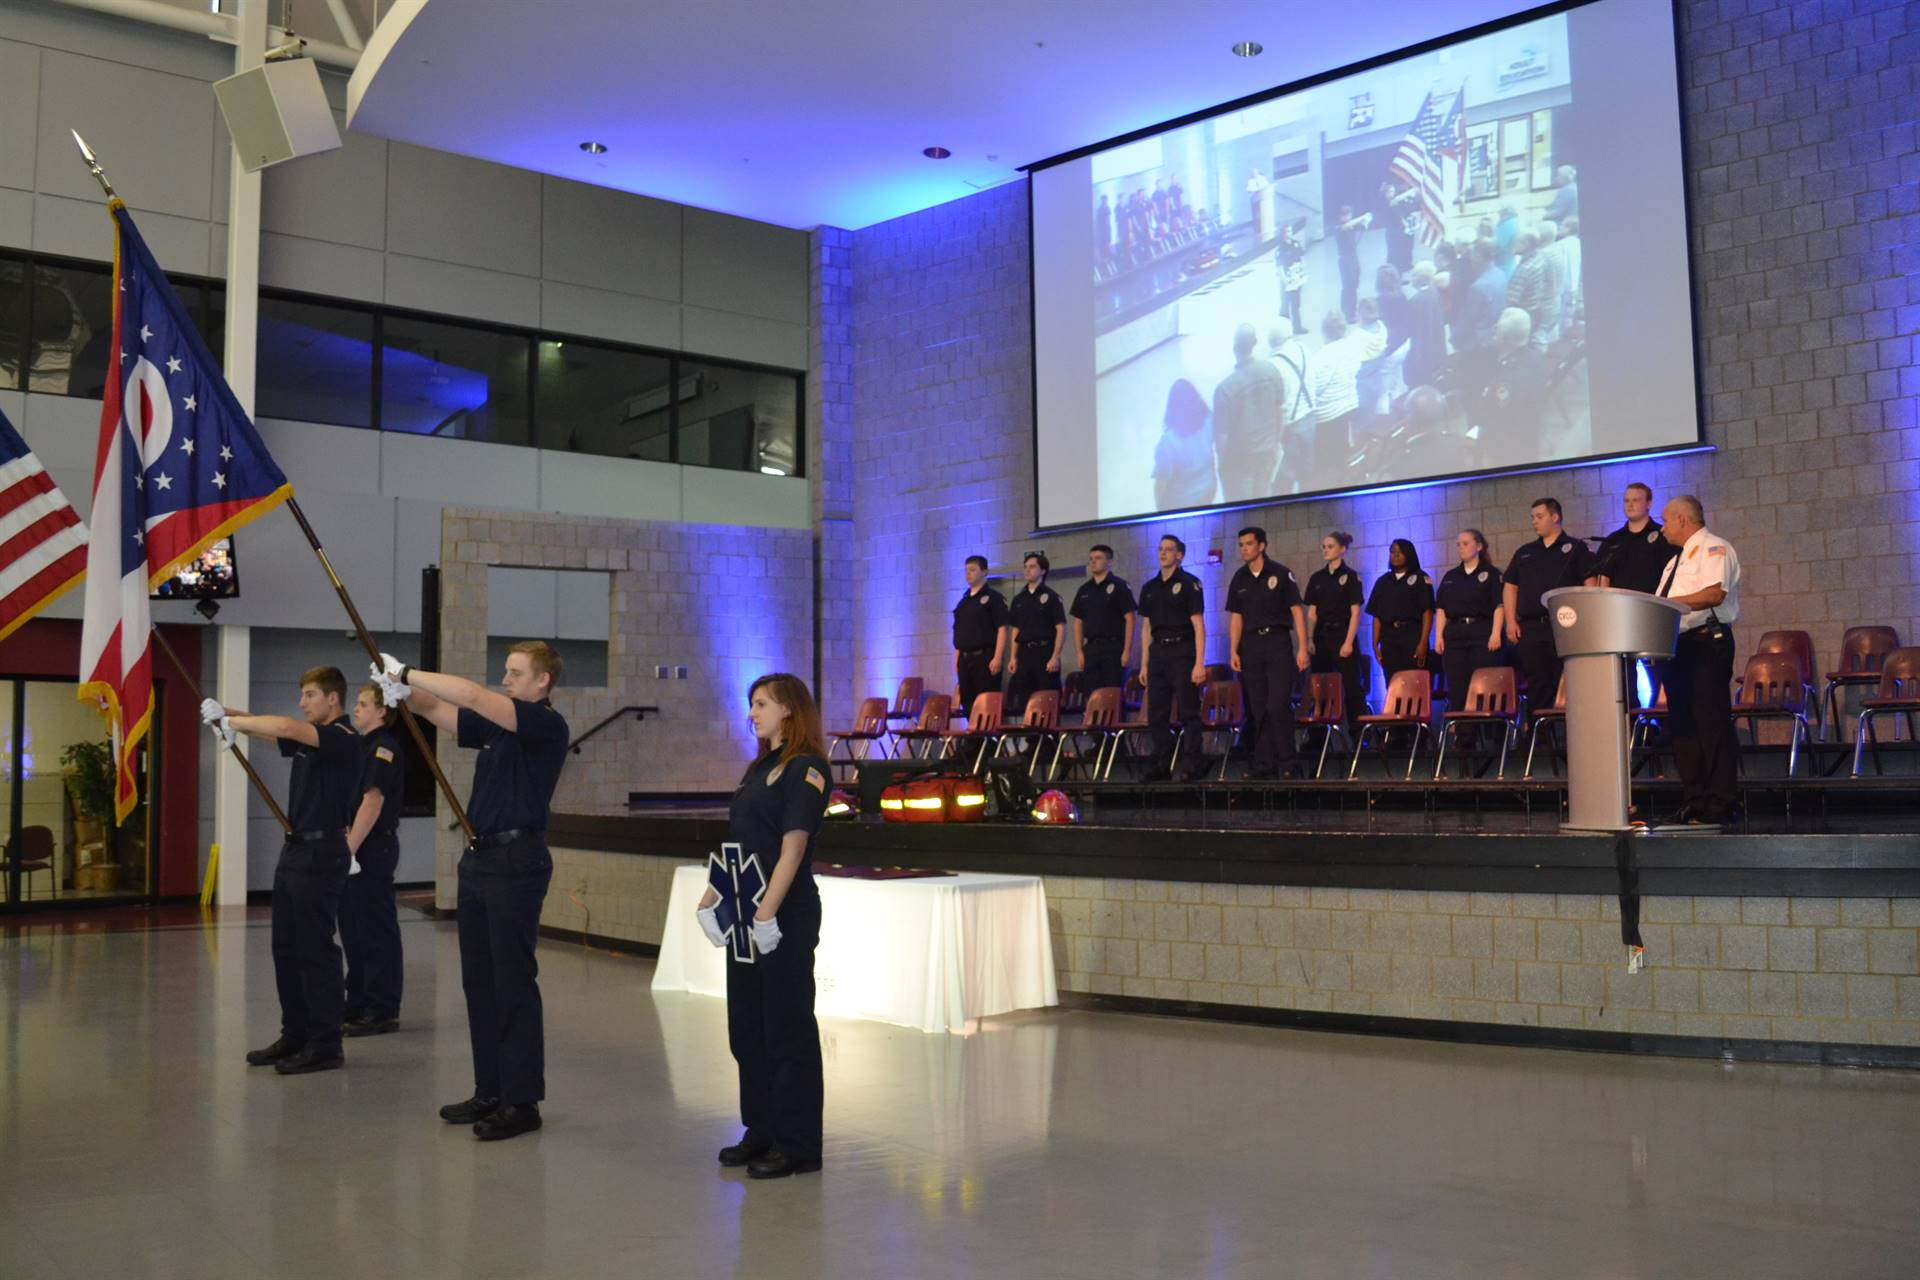 Public Health & Safety Ceremony May 17, 2018